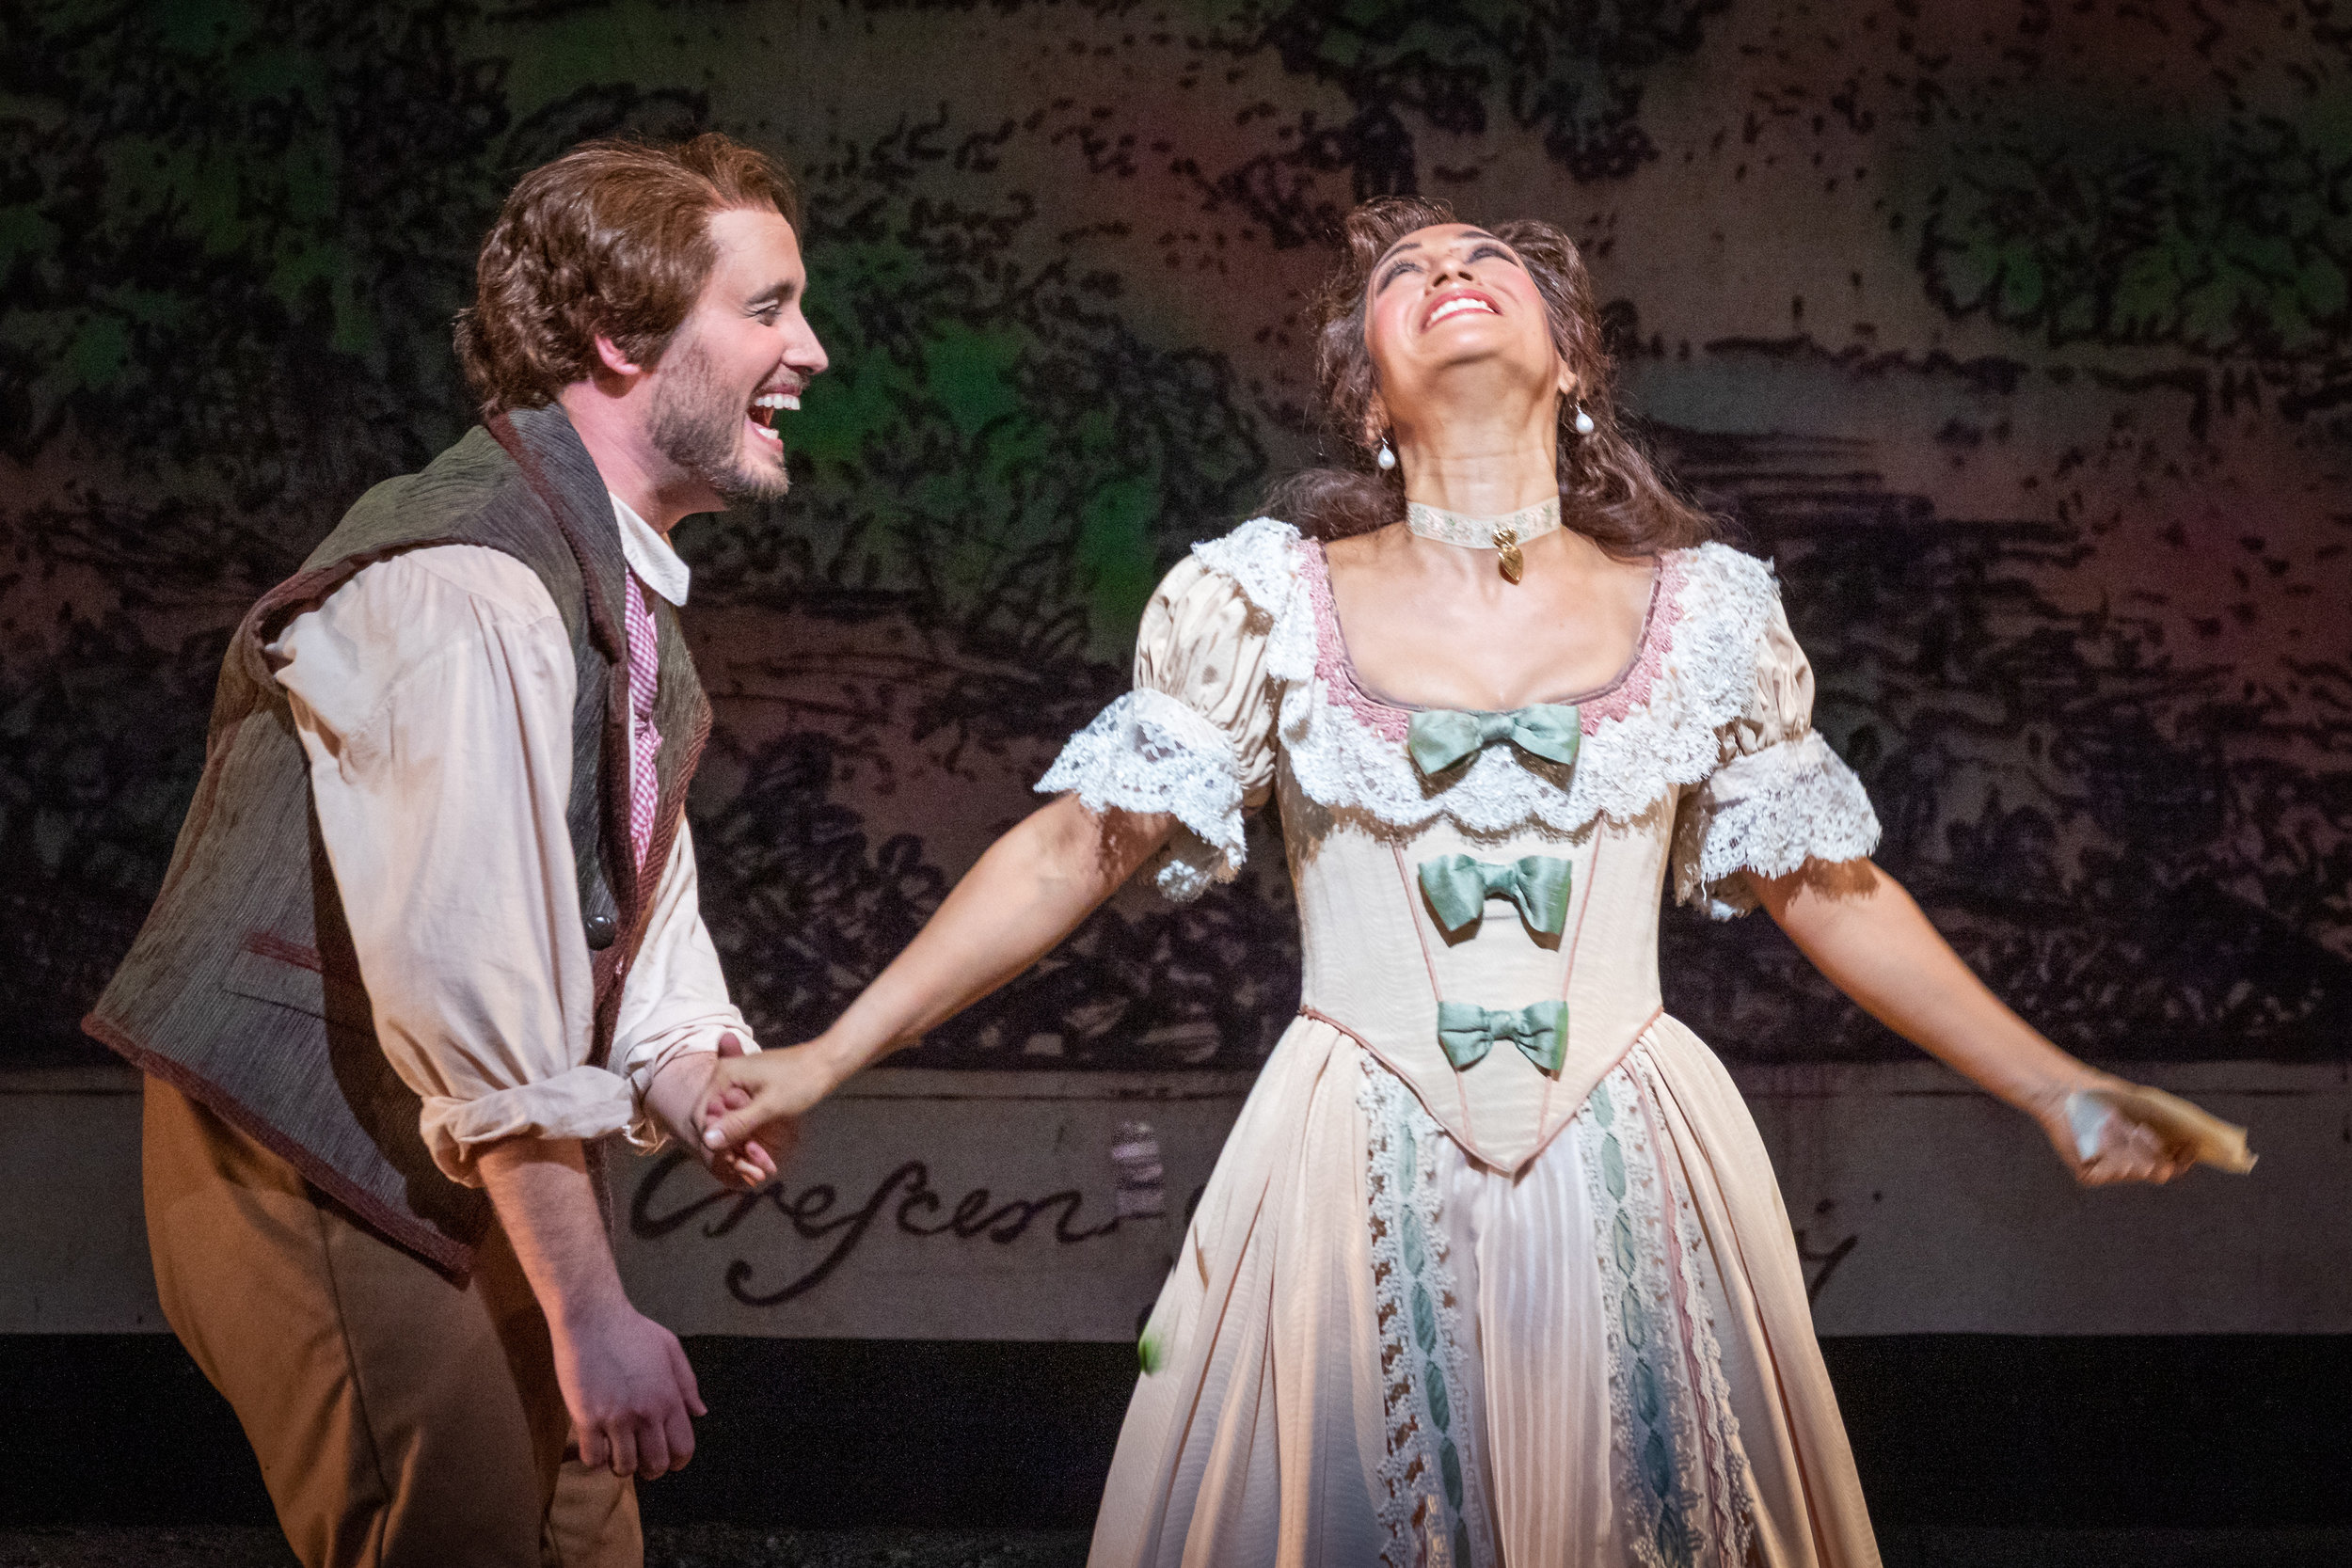 True love triumphs and happiness reigns. Photo by Ben Schill Photography; courtesy of Virginia Opera.